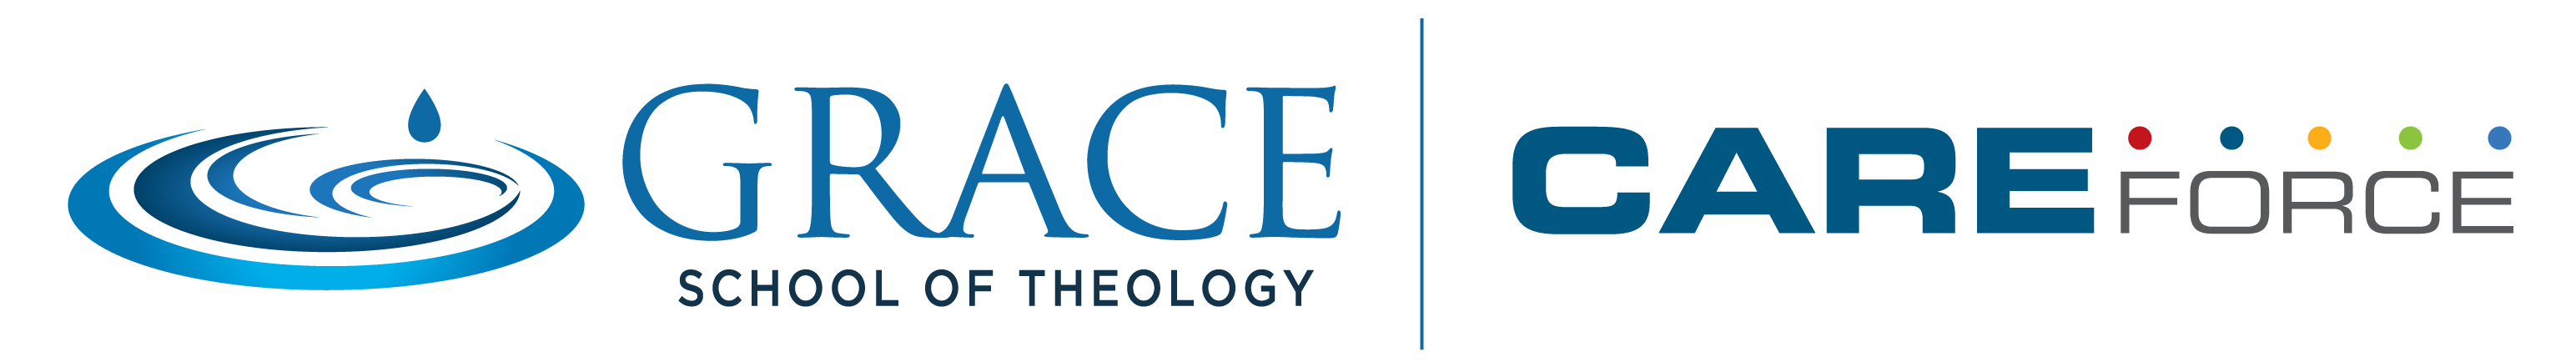 Grace School of Theology - CAREForce